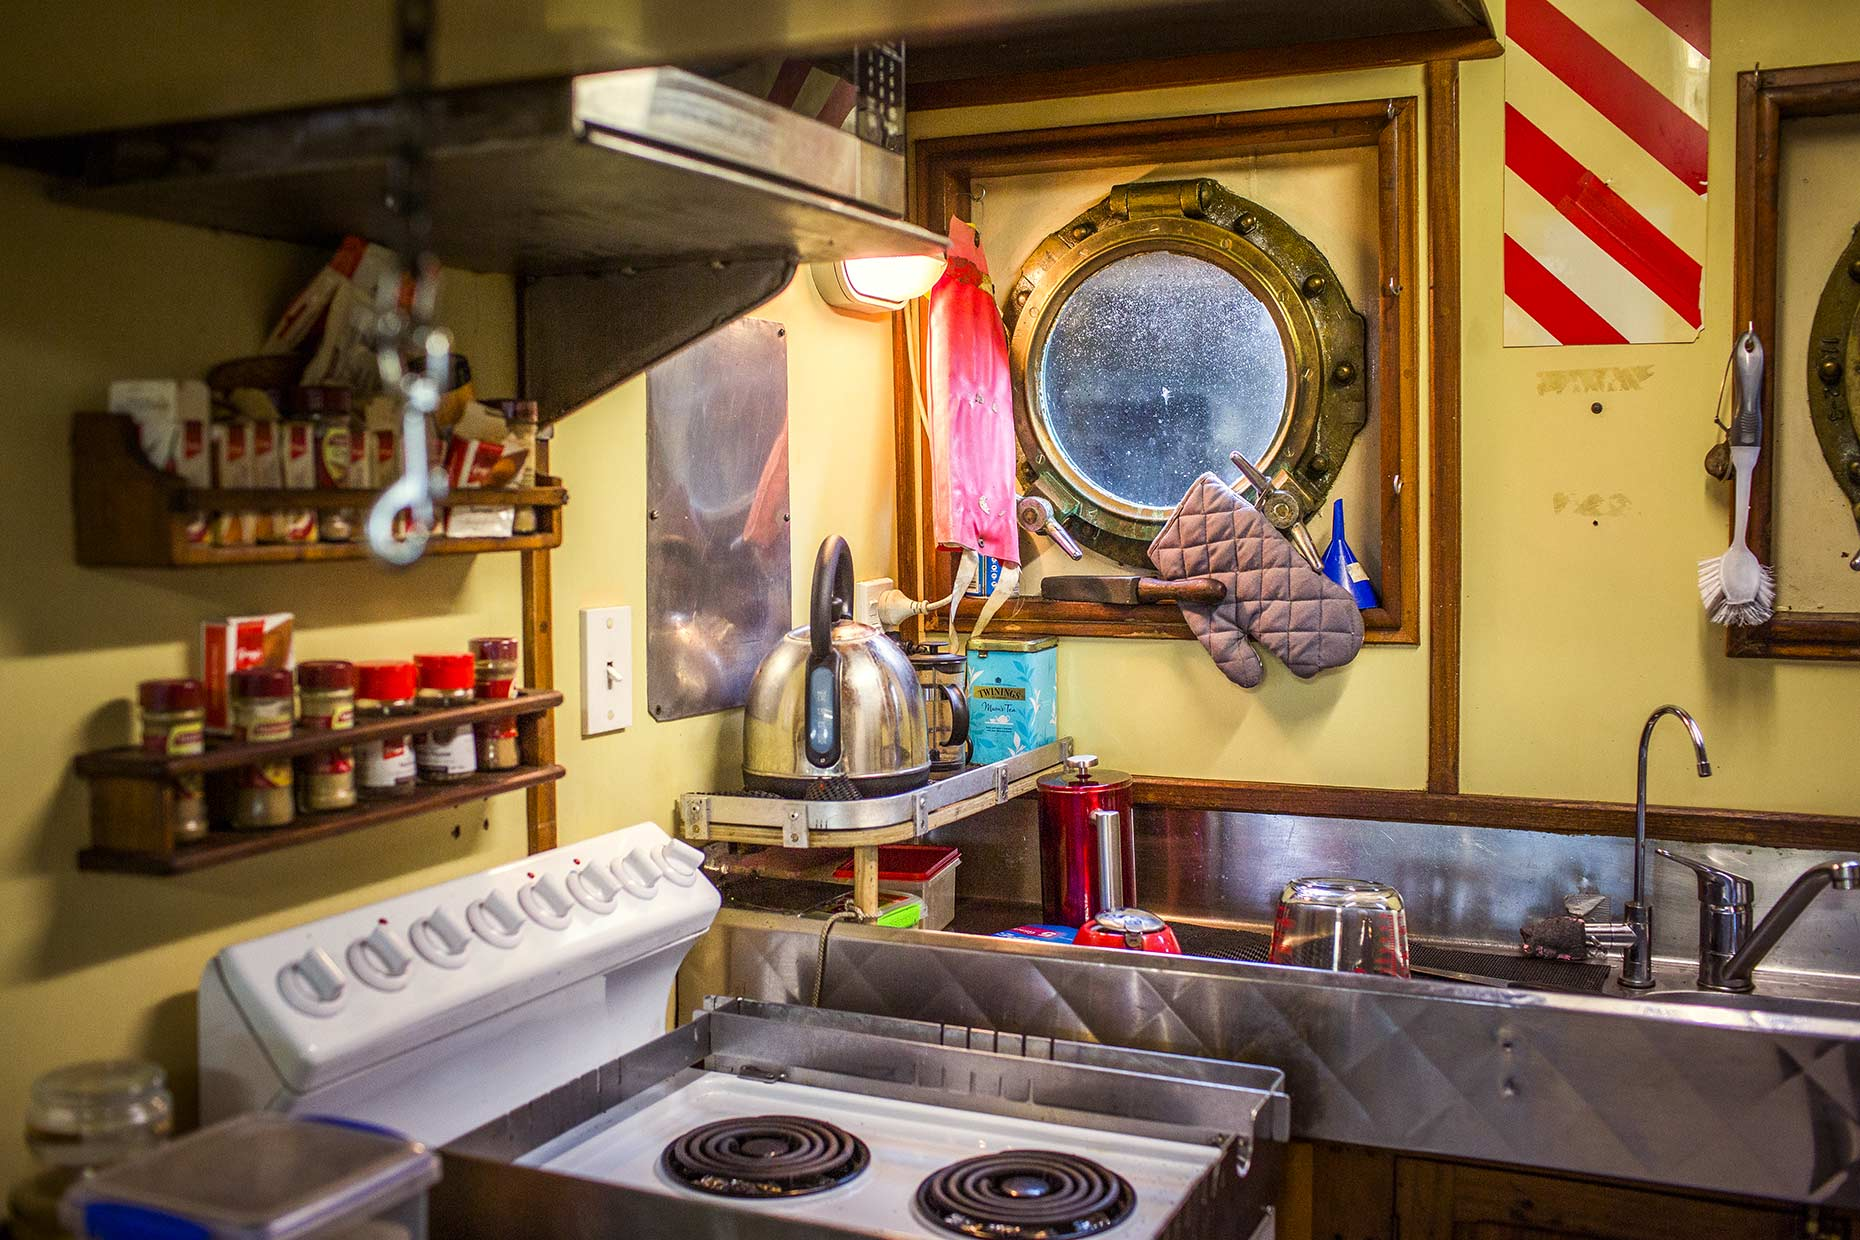 Kitchen Clutter - Tug Boat Auckland